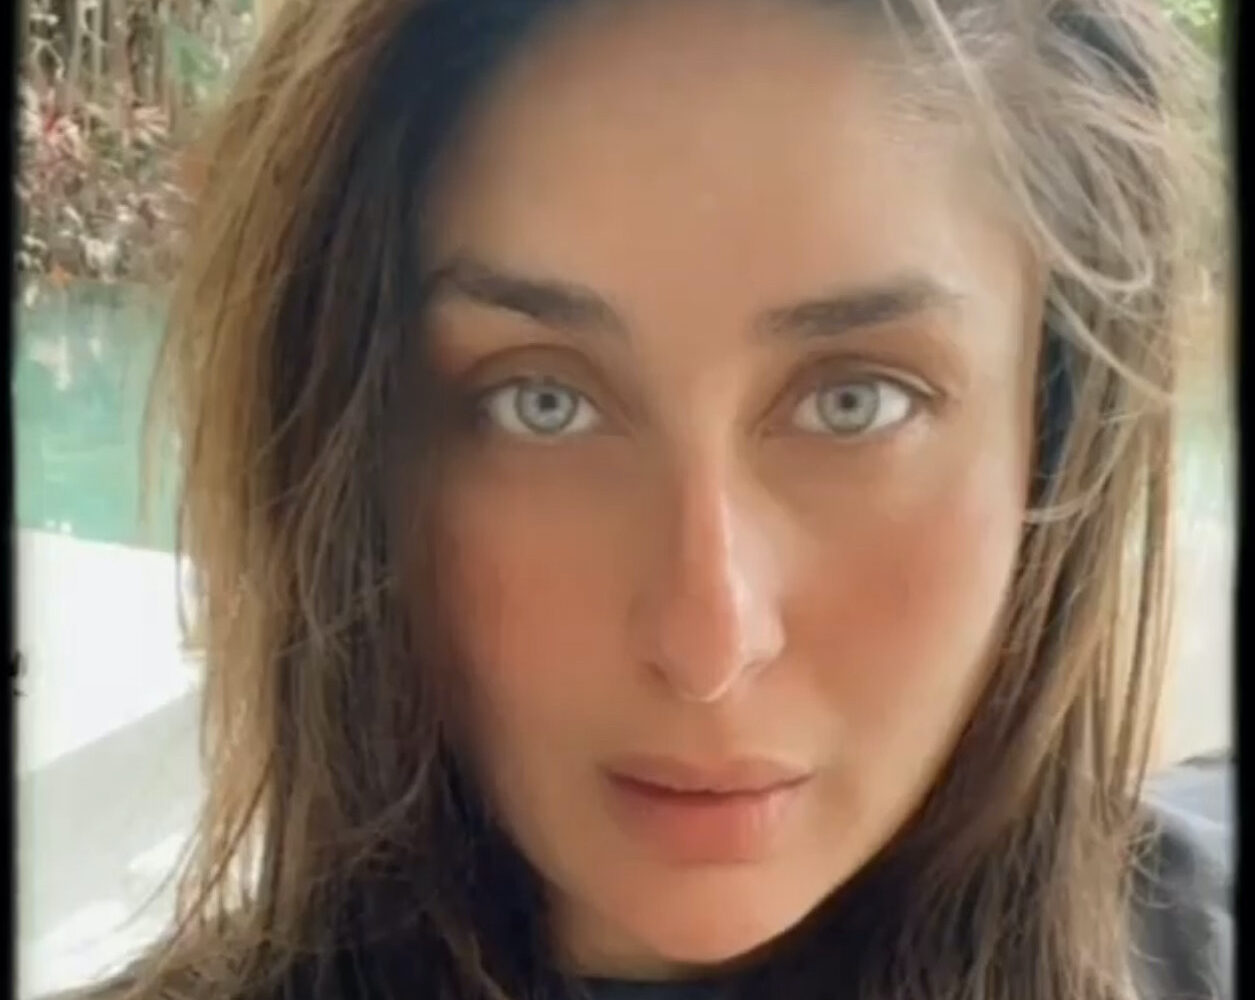 Kareena Kapoor Khan chills at home & gives a glimpse of her 'Moody Tuesdays'; WATCH